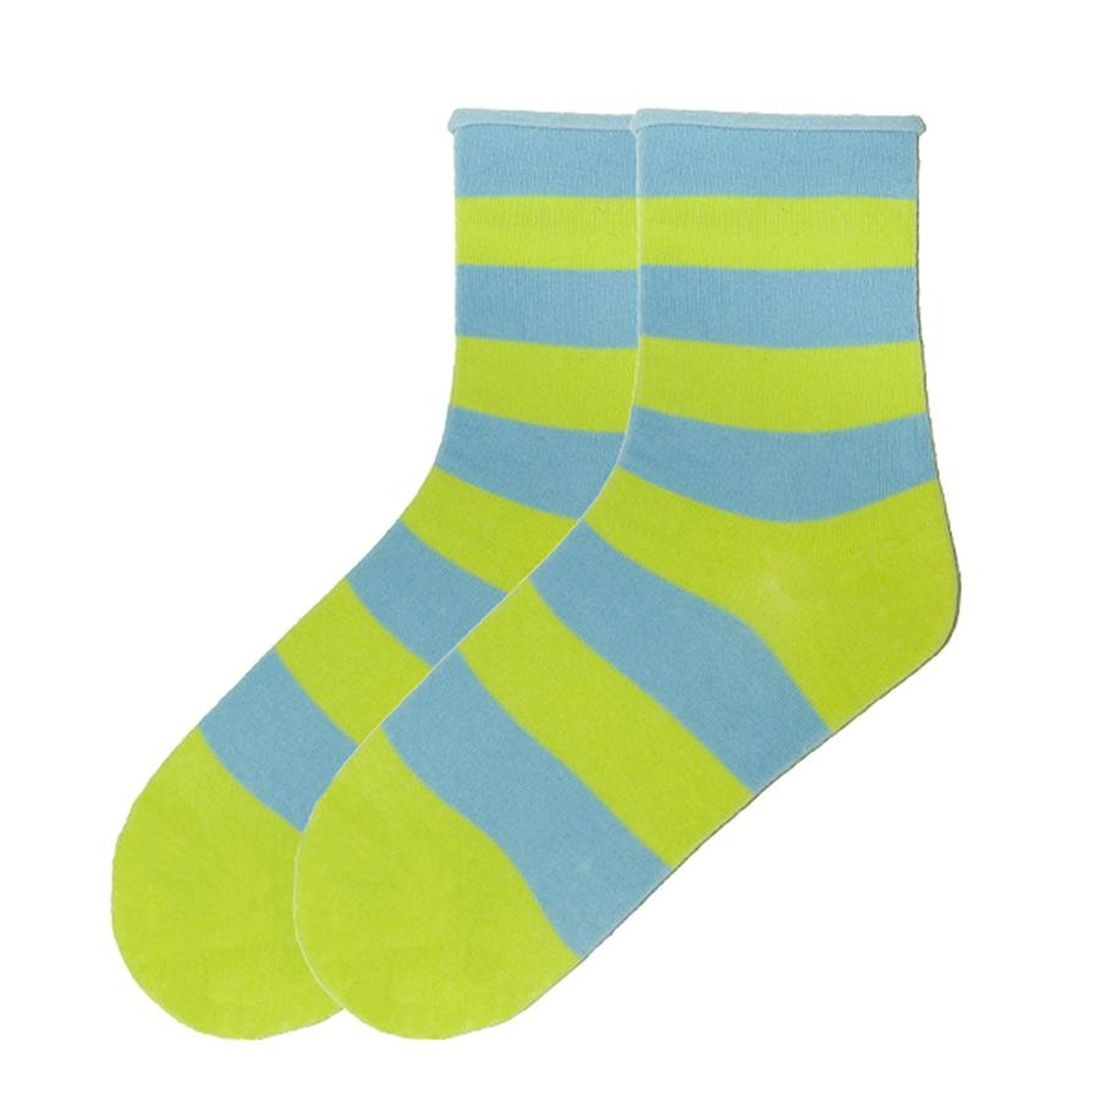 Green Rugby Socks: K. Bell Women's Rugby Striped Relaxed Top Crew Socks